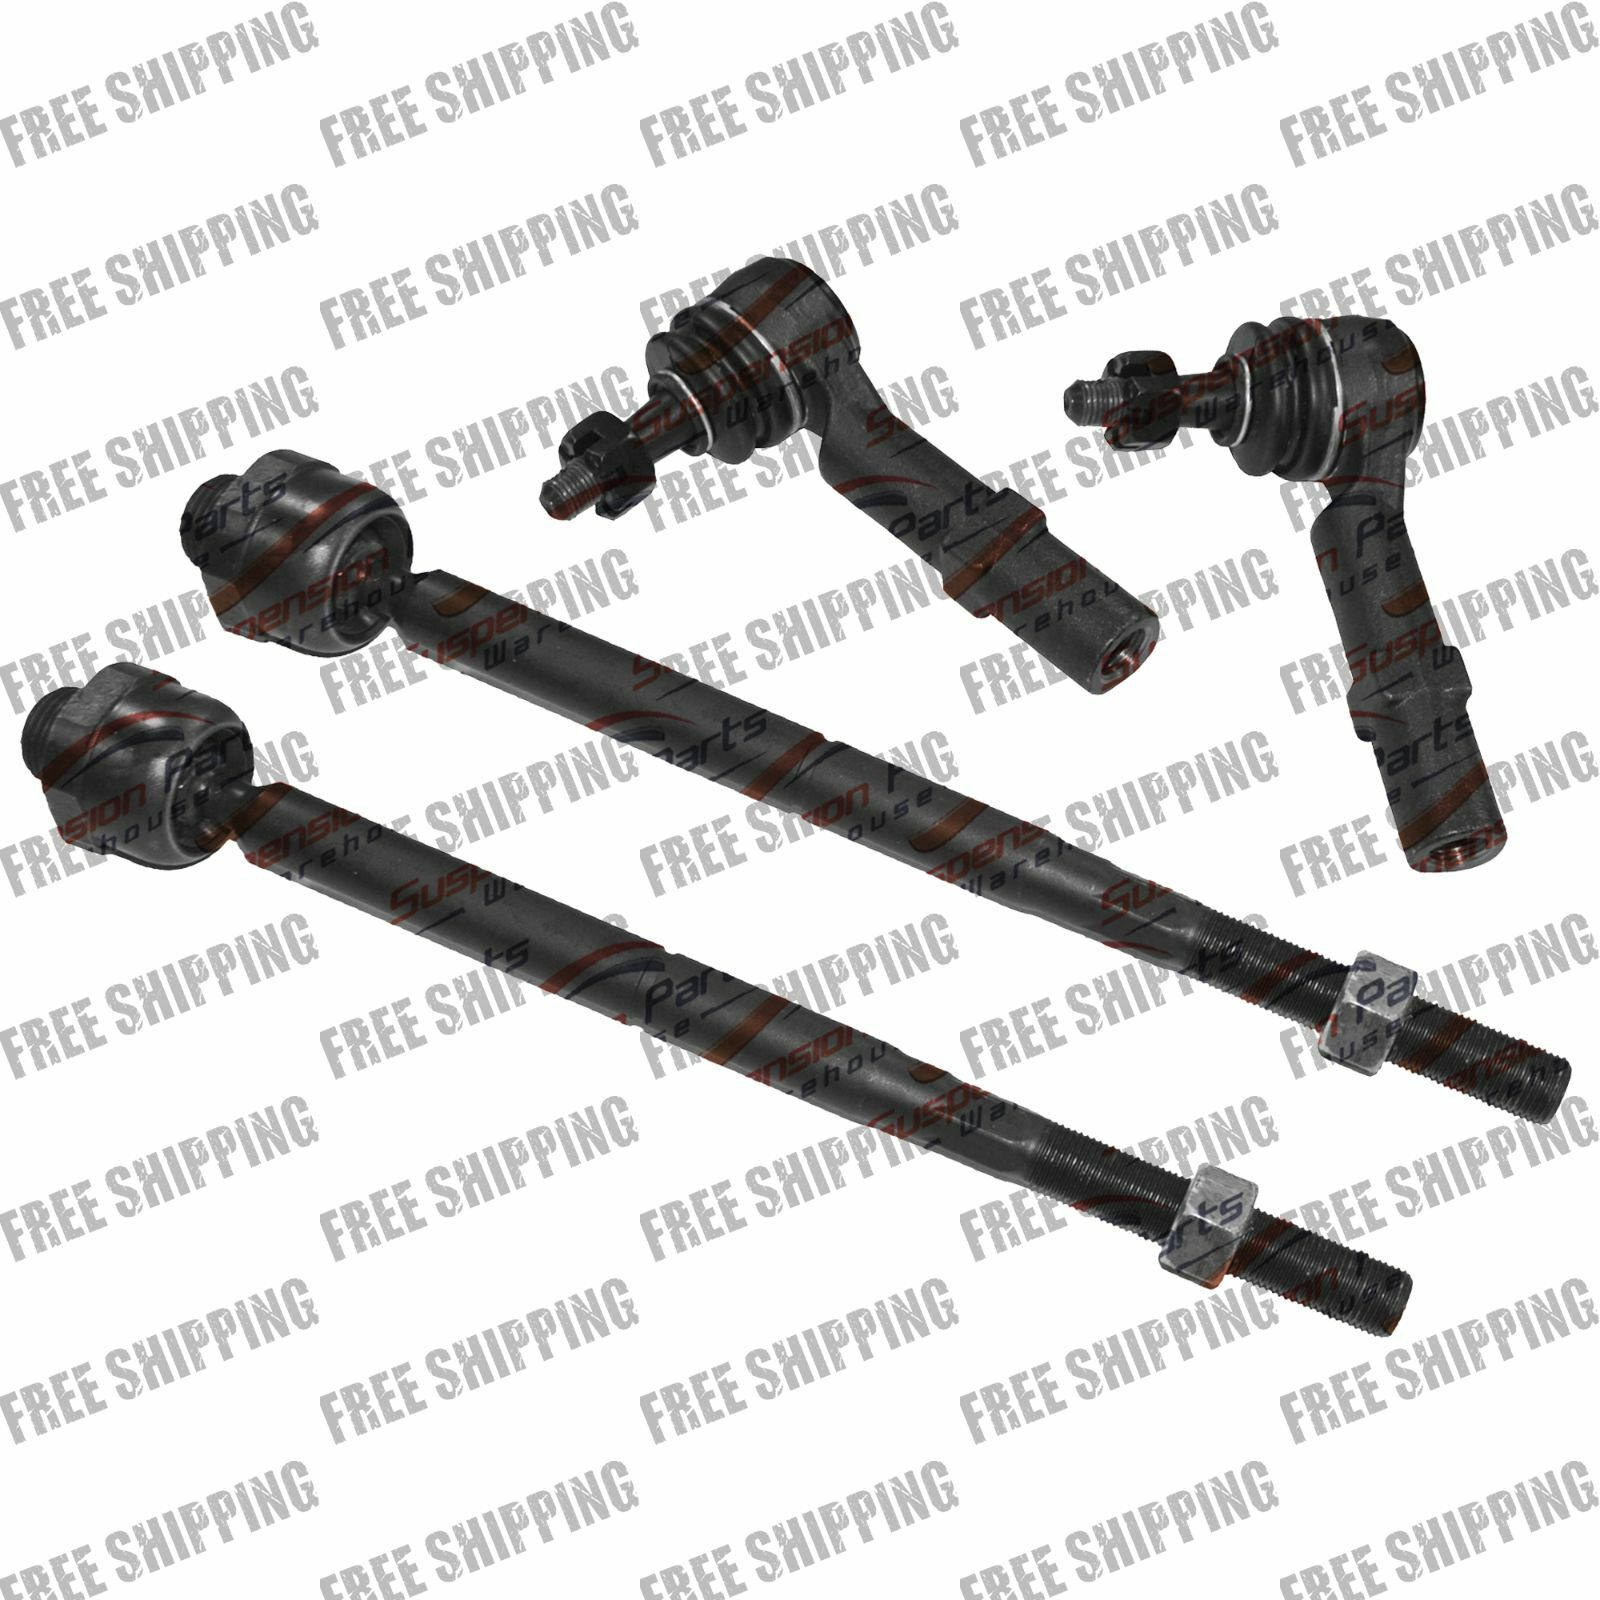 INEEDUP NEW 6 Set of Outer Tie Rod Ends Front Sway Bar End Links Outer Tie Rod Ends Rear Sway Bar End Links Rear Sway Bar End Links Compatible with for 2003-2006 Infiniti FX35 2003-2006 Infiniti FX45